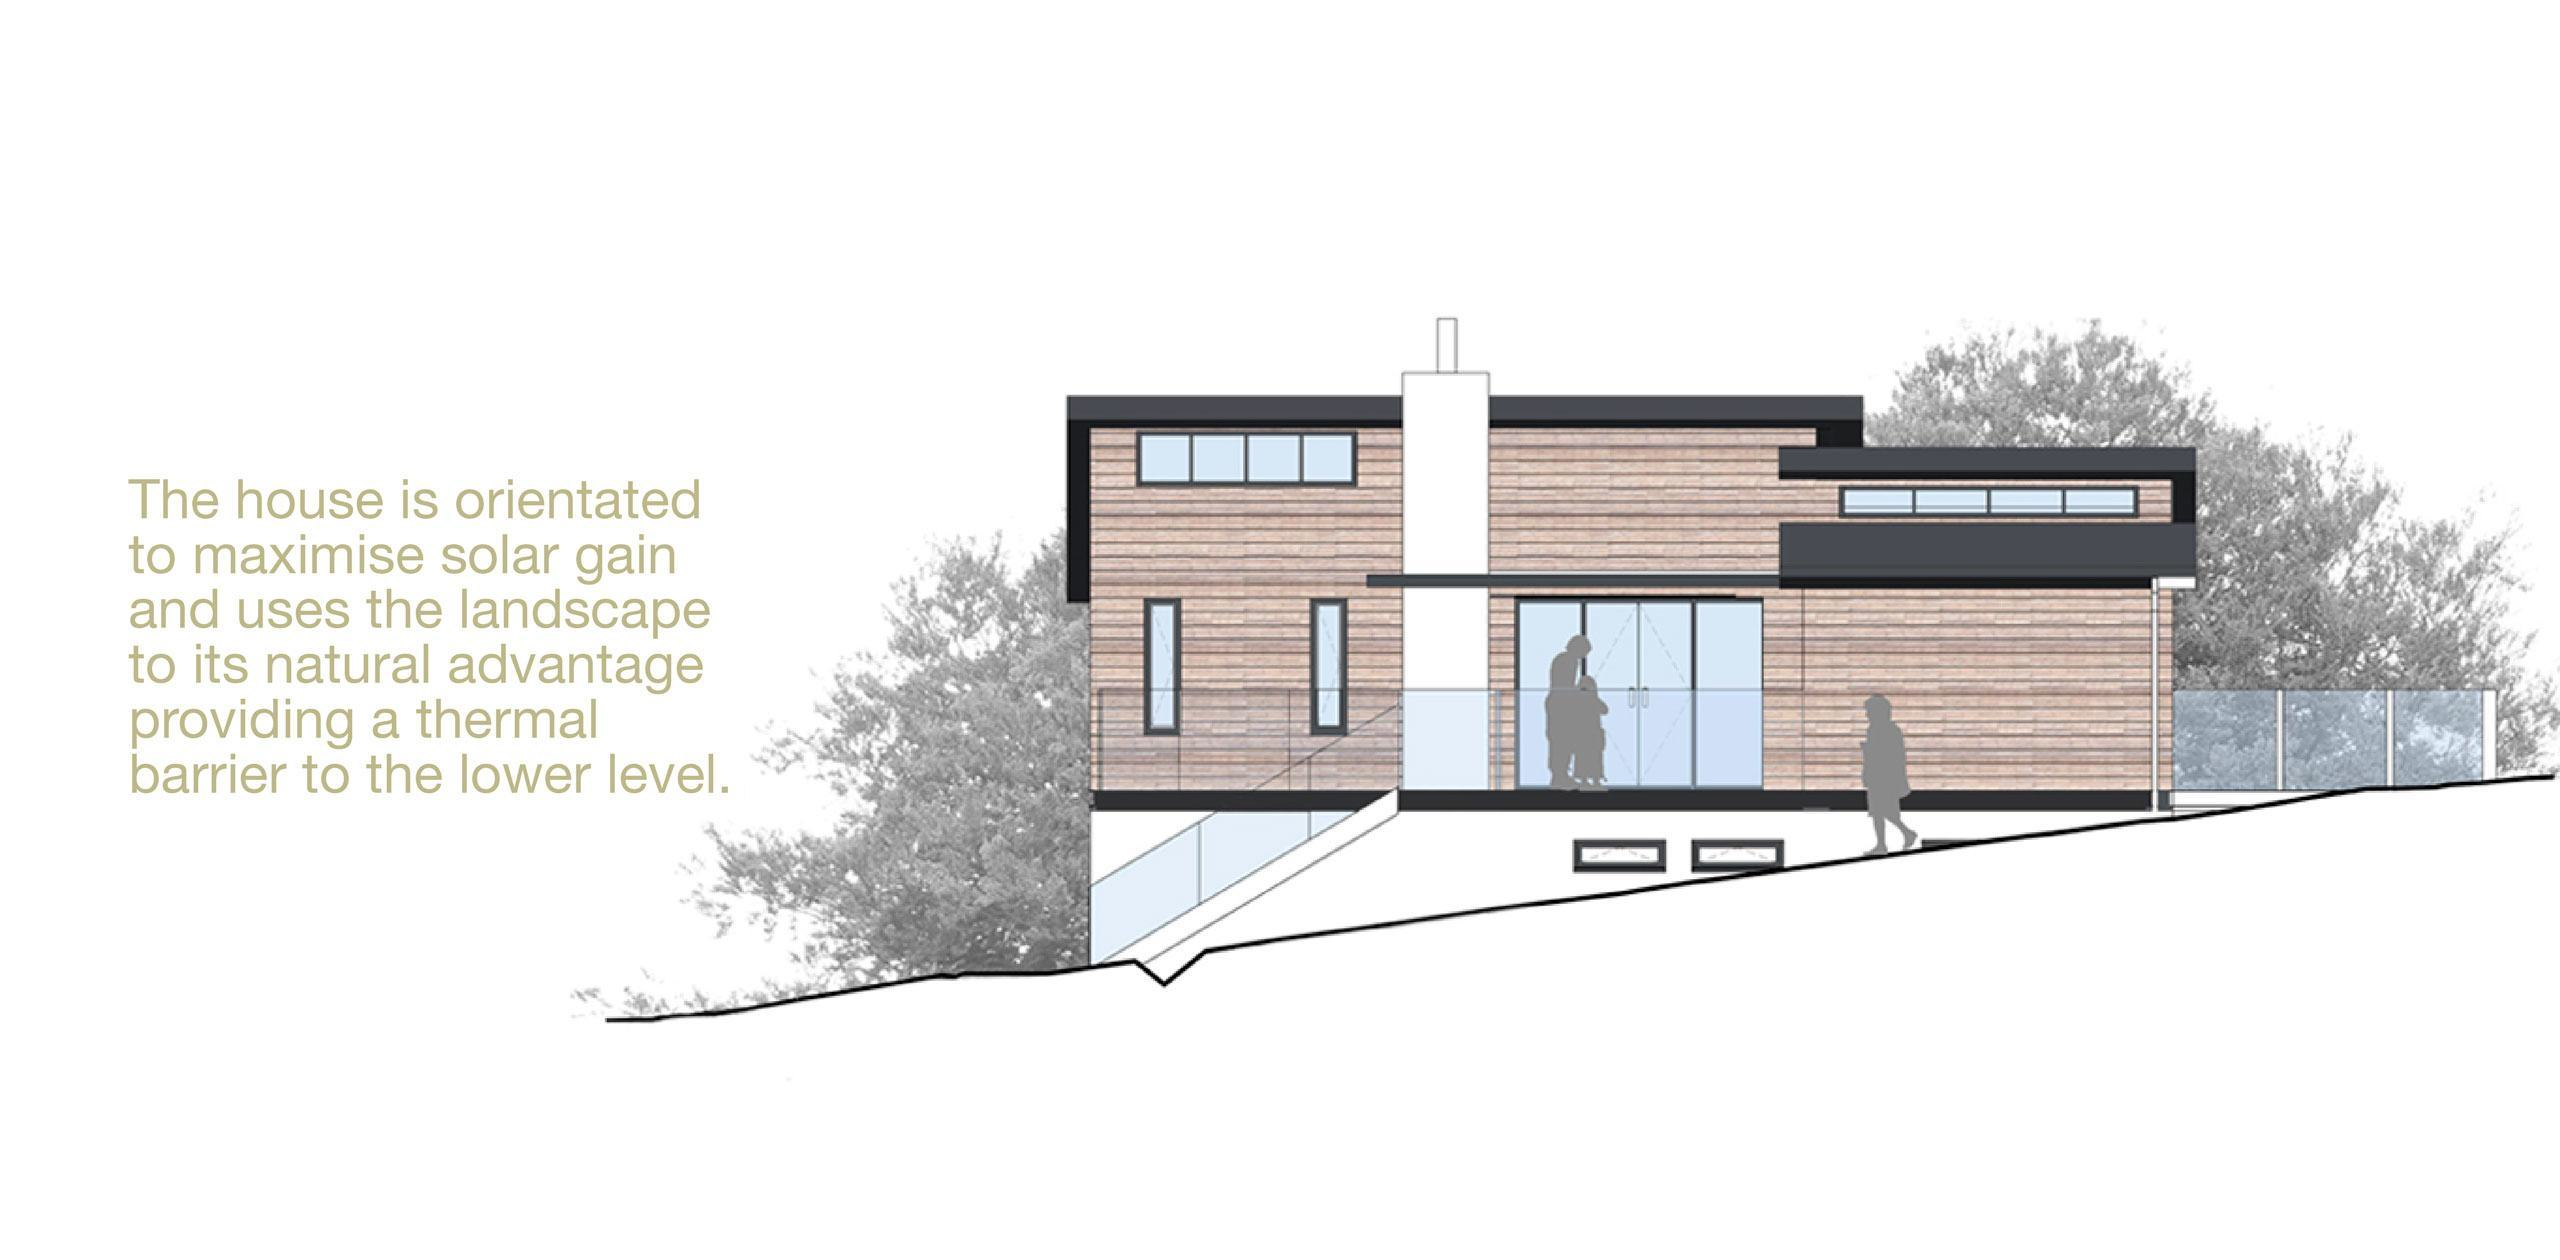 London Road - The house is orientated to maximise solar gain